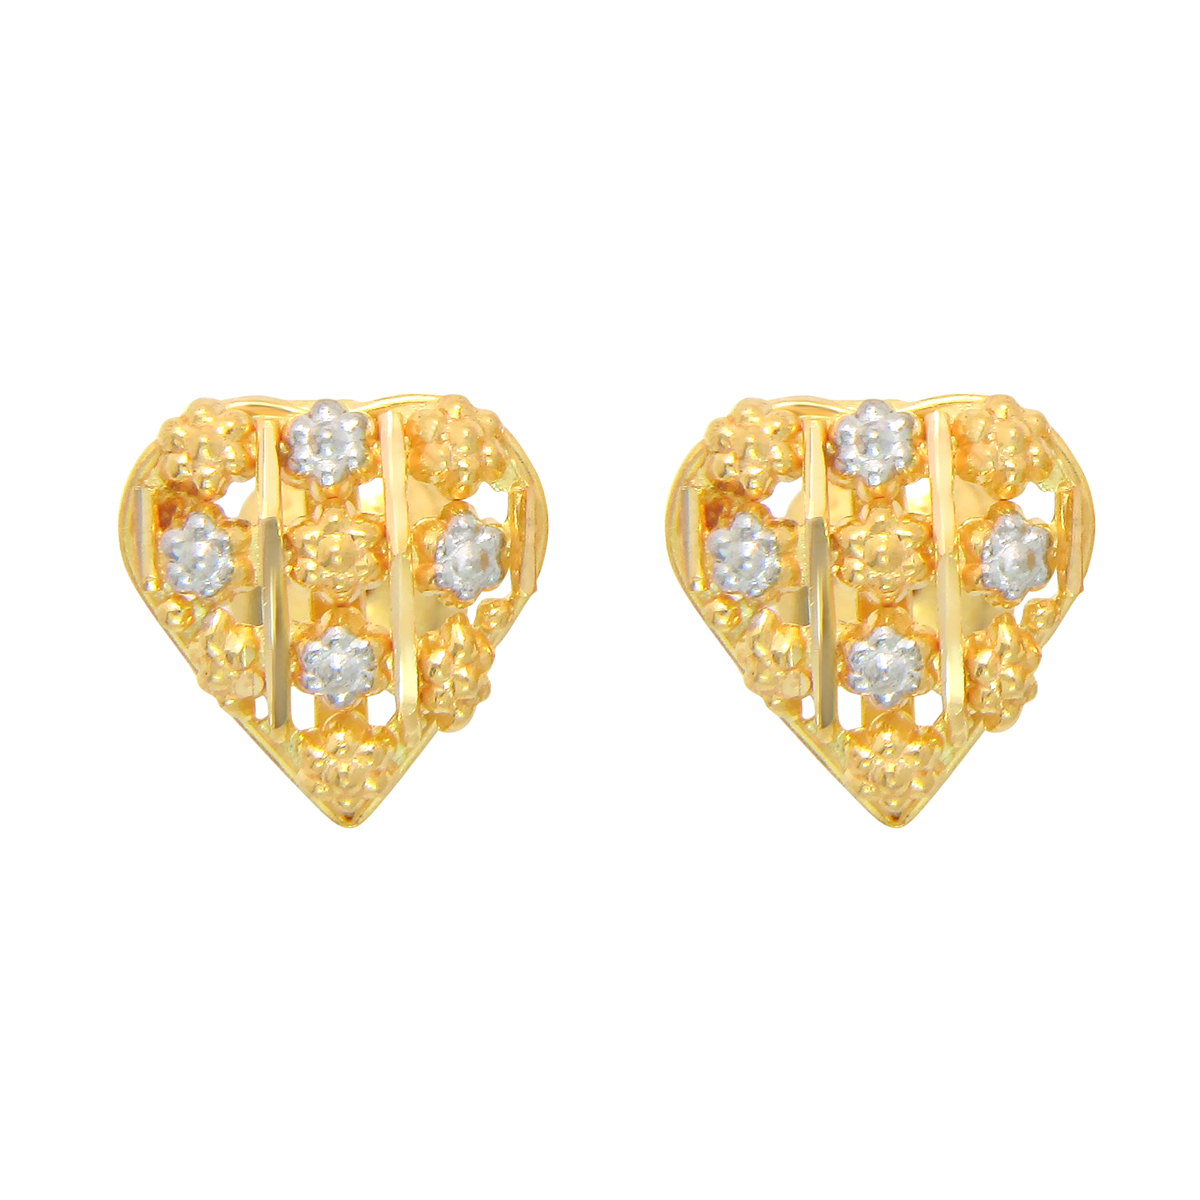 Popley 22Kt Gold Bandhan Earring - A5